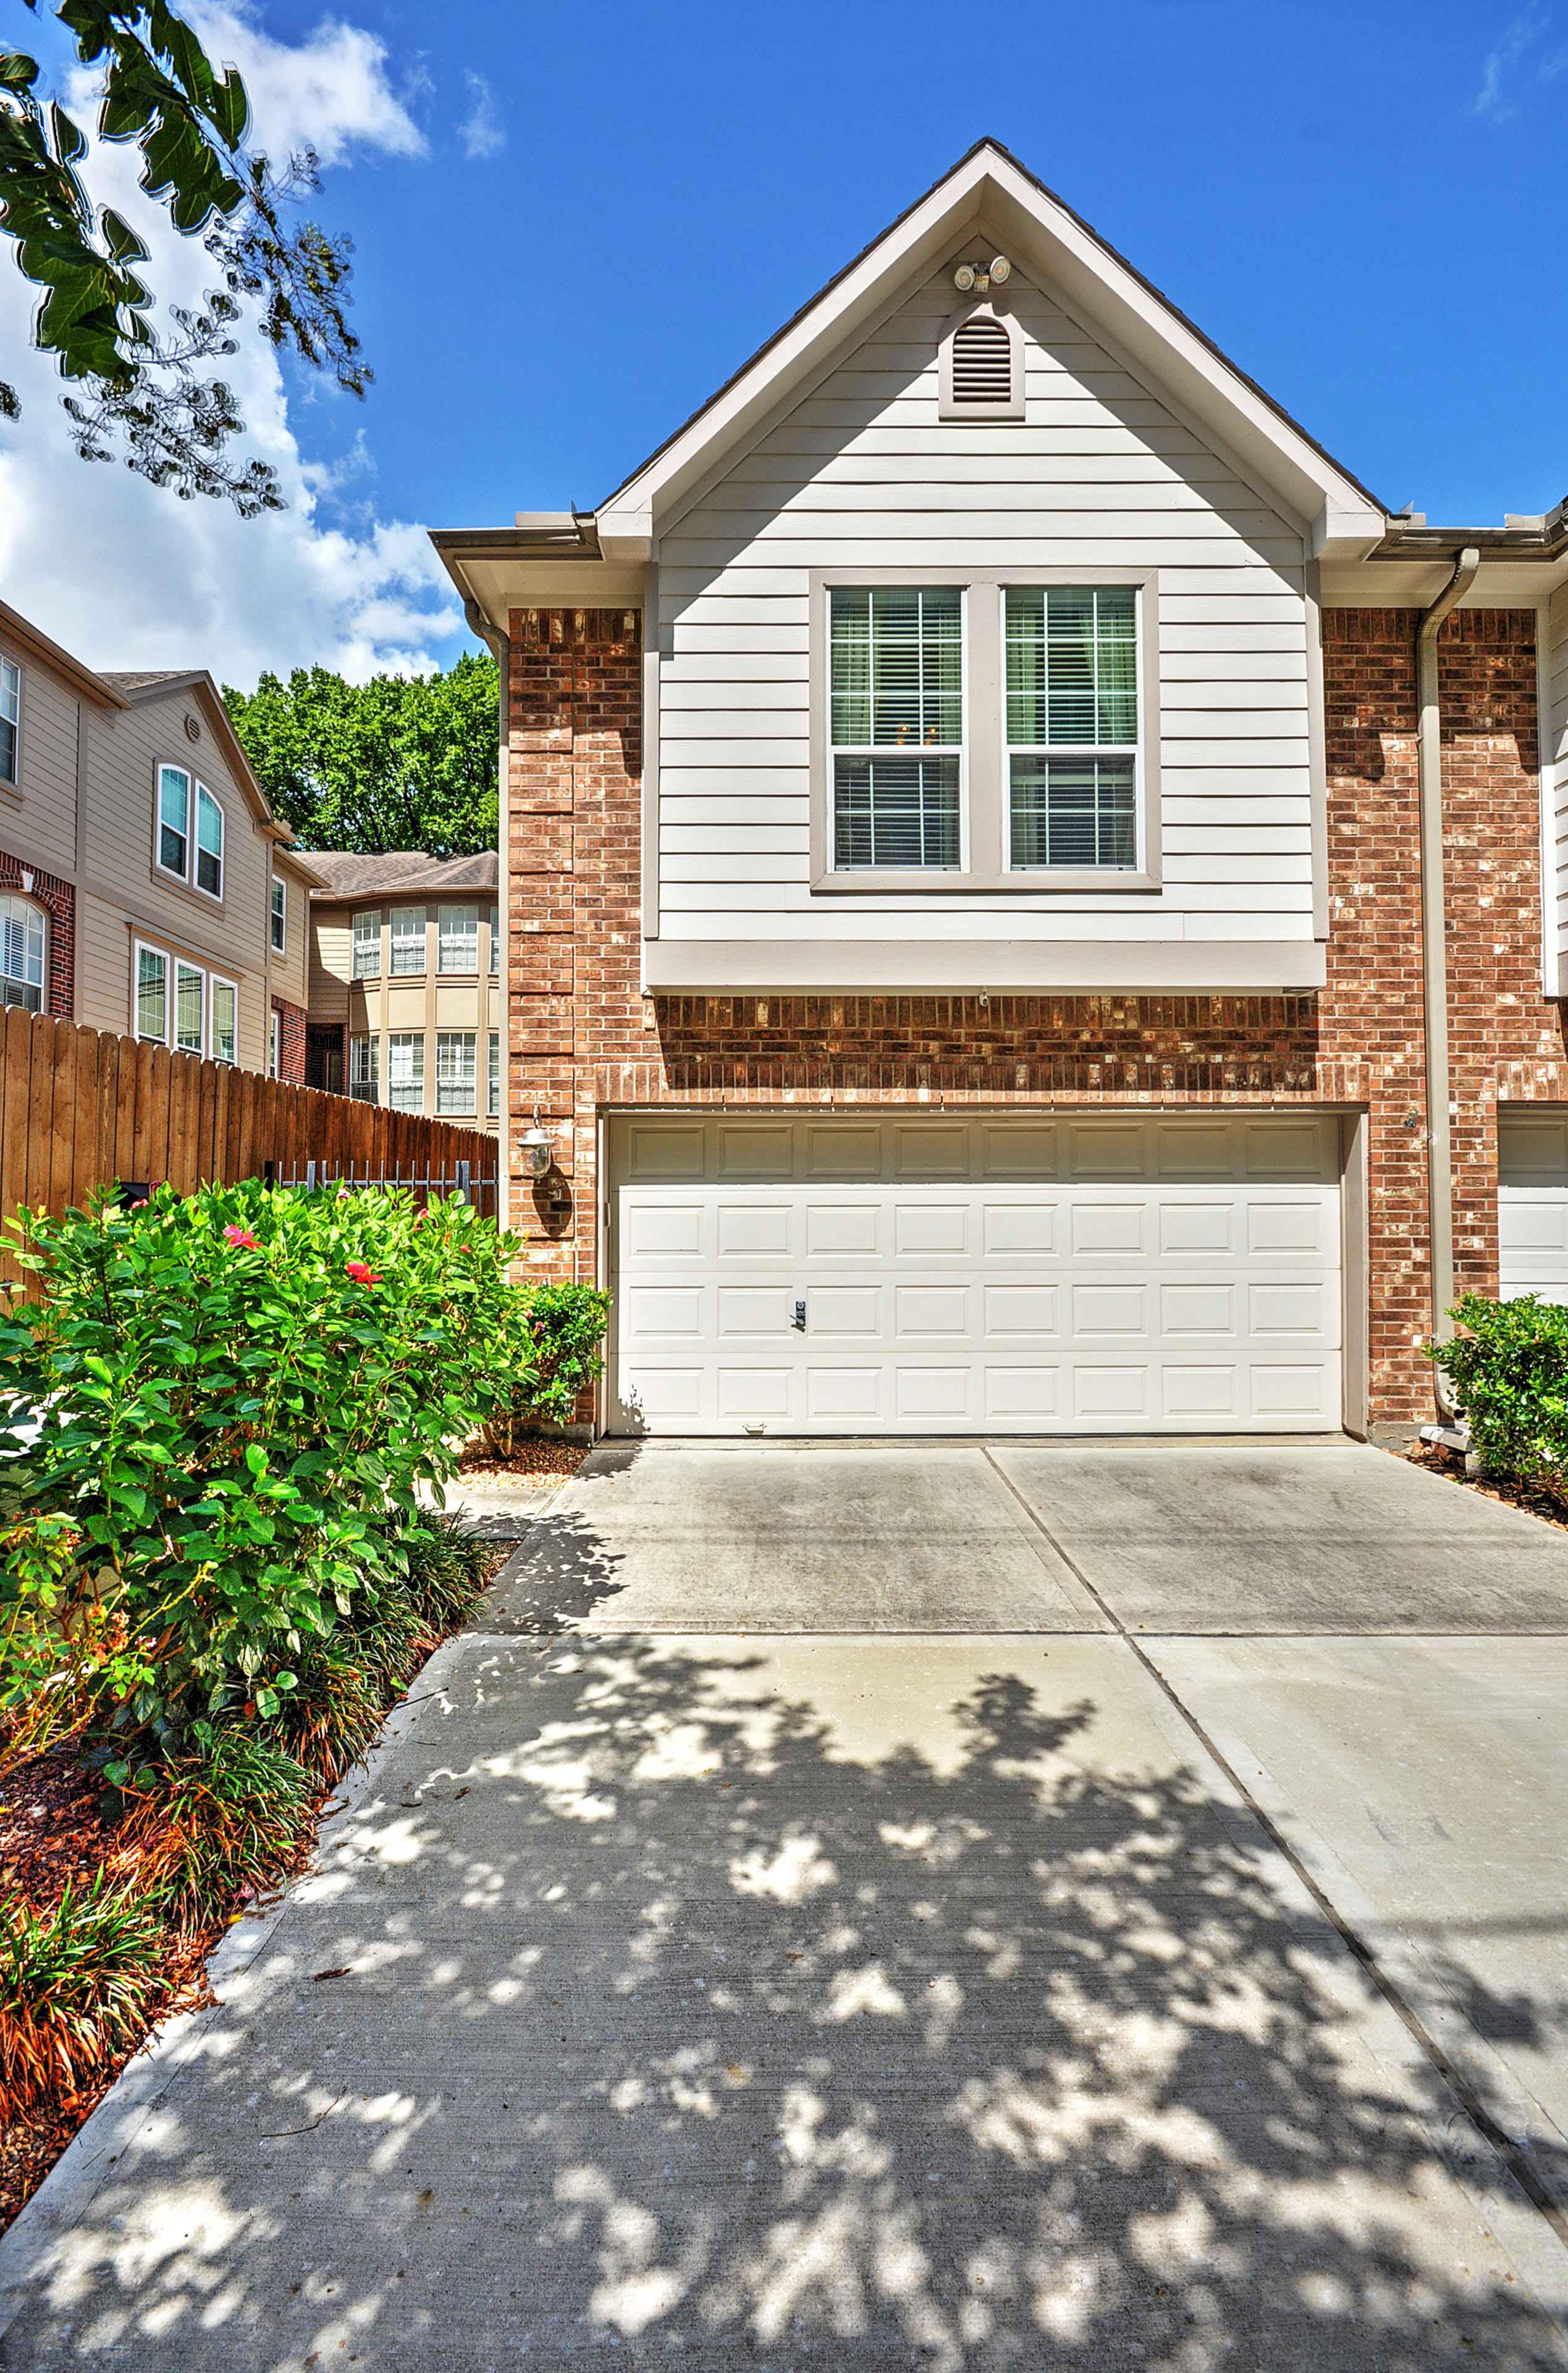 Everything needed for a fantastic stay can be found at this Houston vacation rental house!